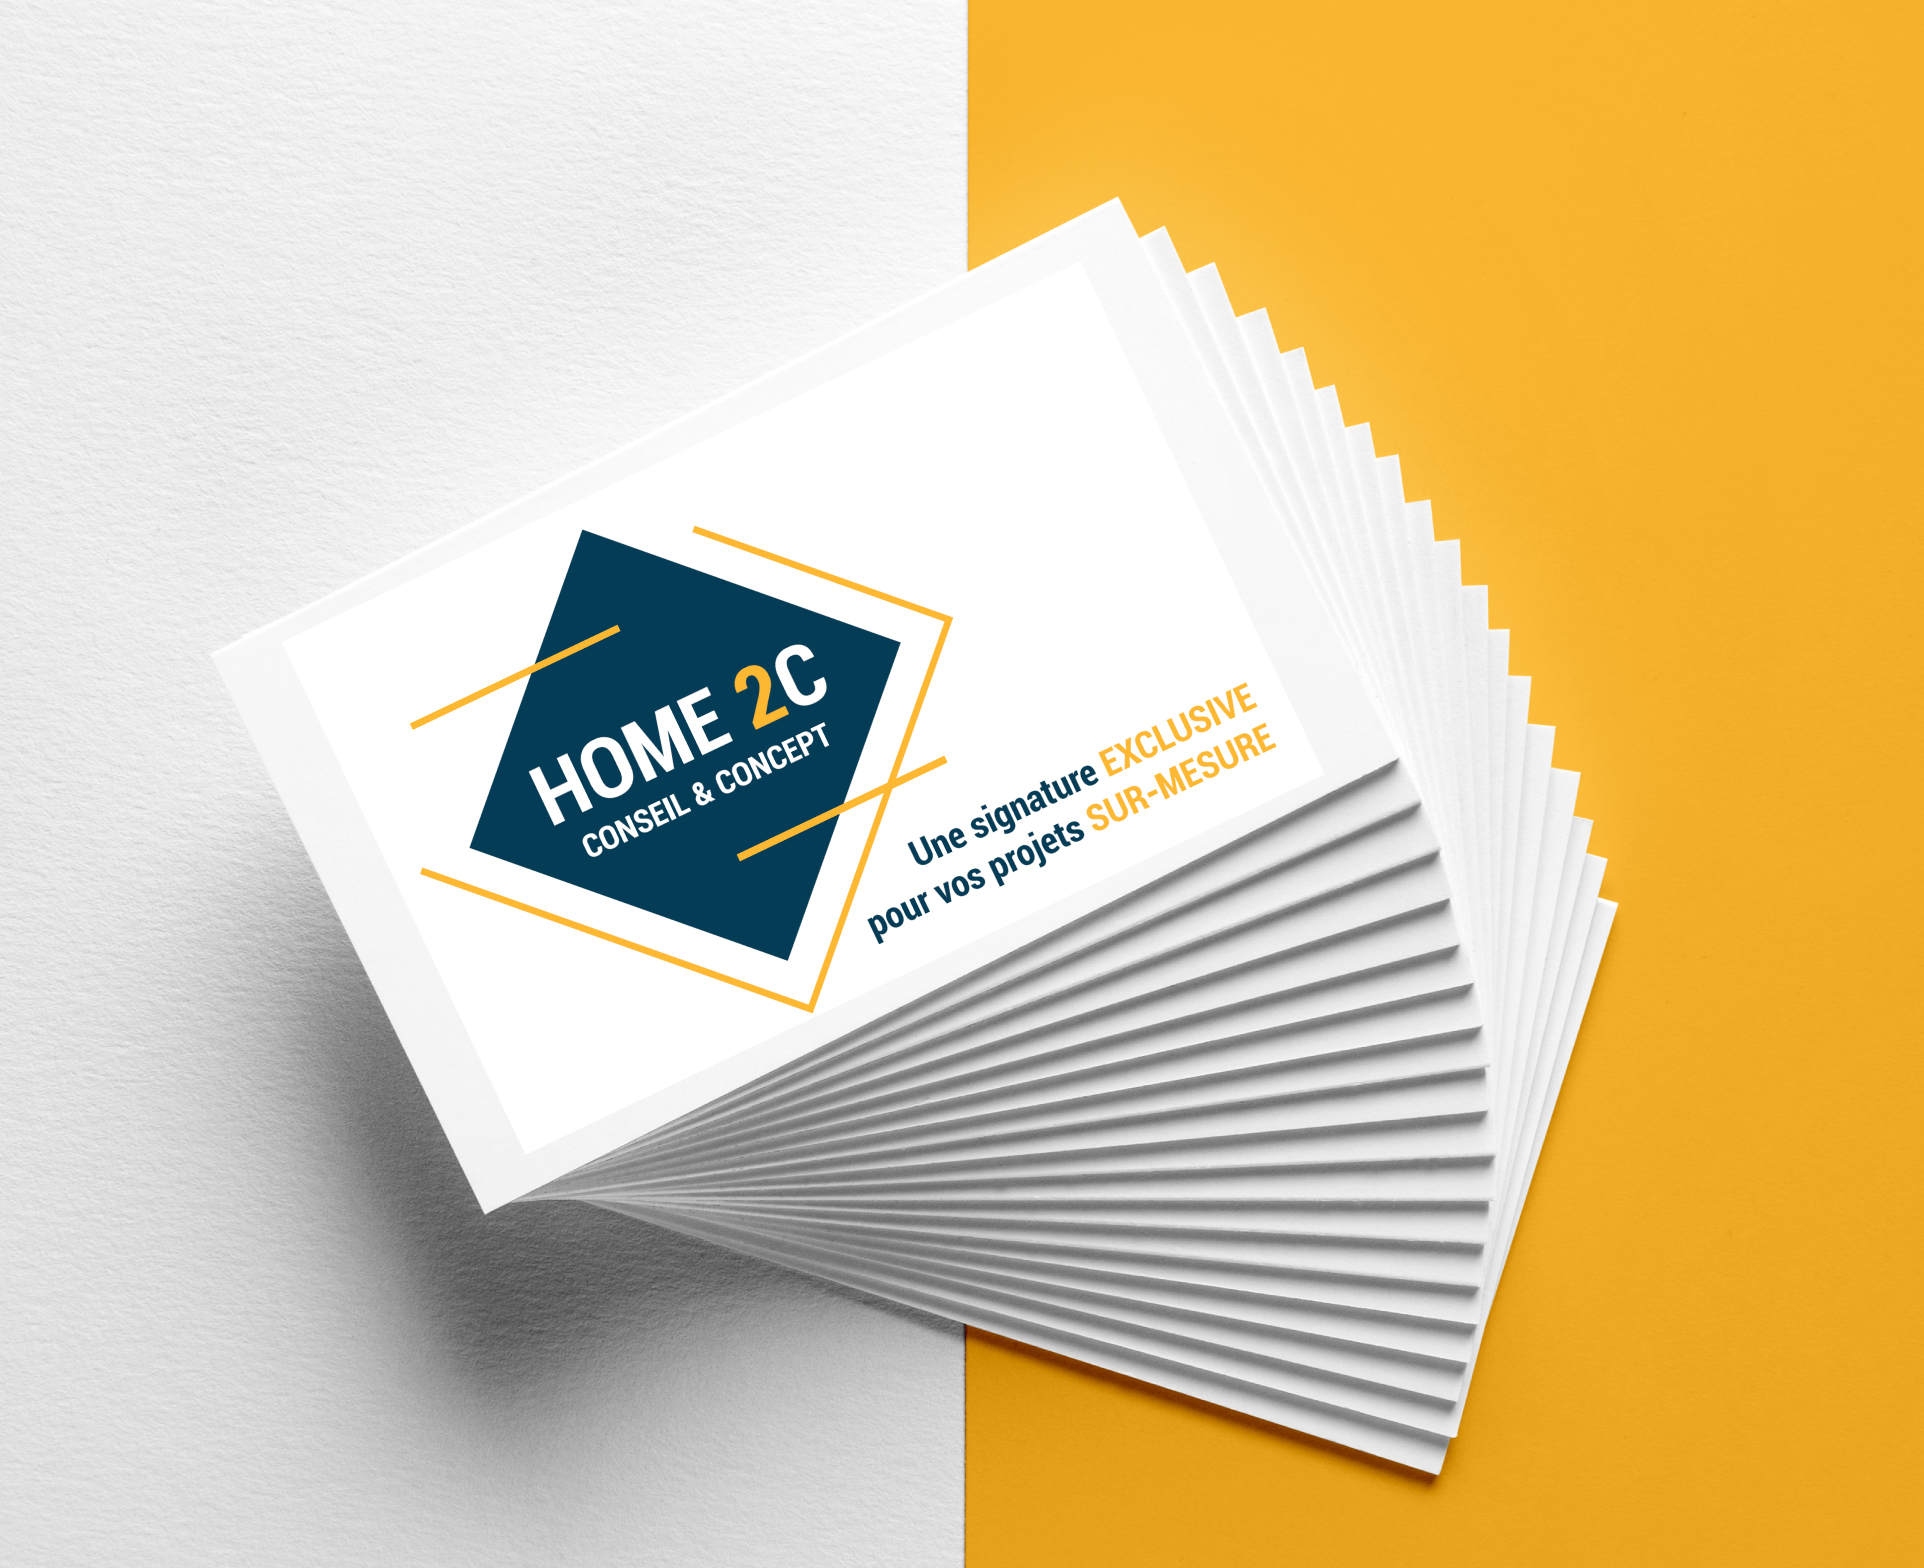 Carte de visite HOME2C by essens consult